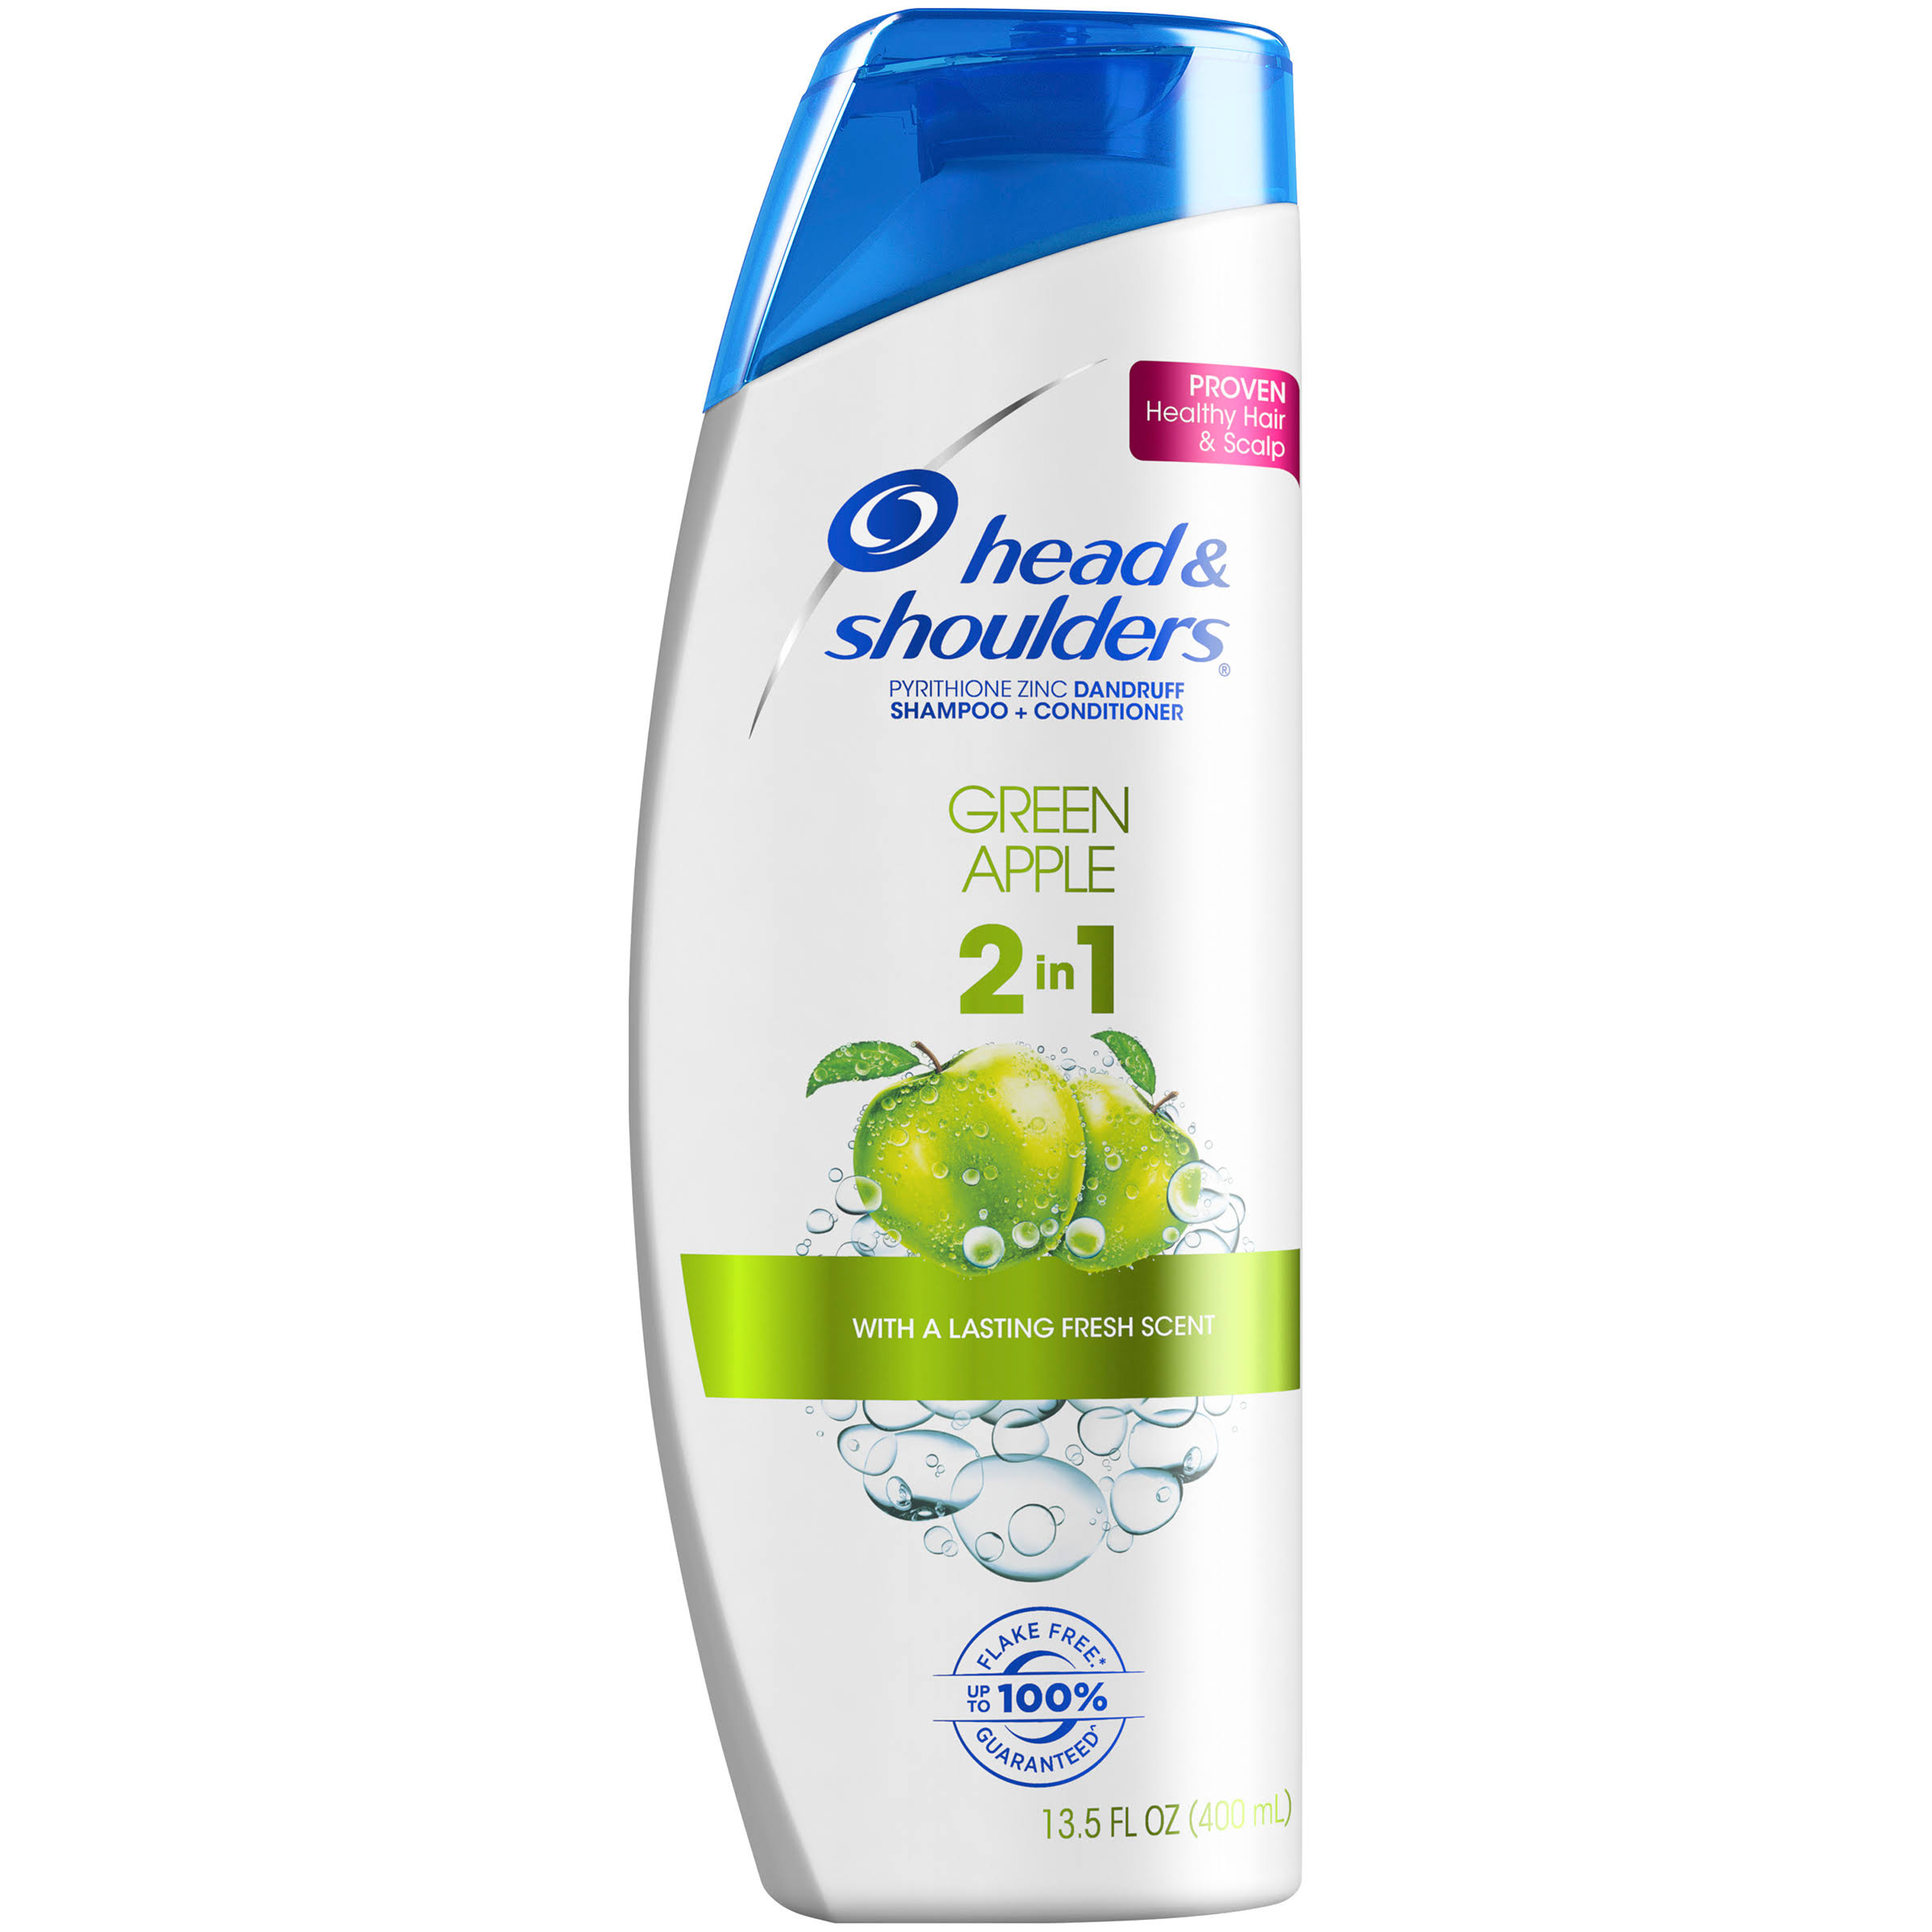 Head and Shoulders 2 in 1 Dandruff Shampoo + Conditioner - Green Apple, 13.5oz